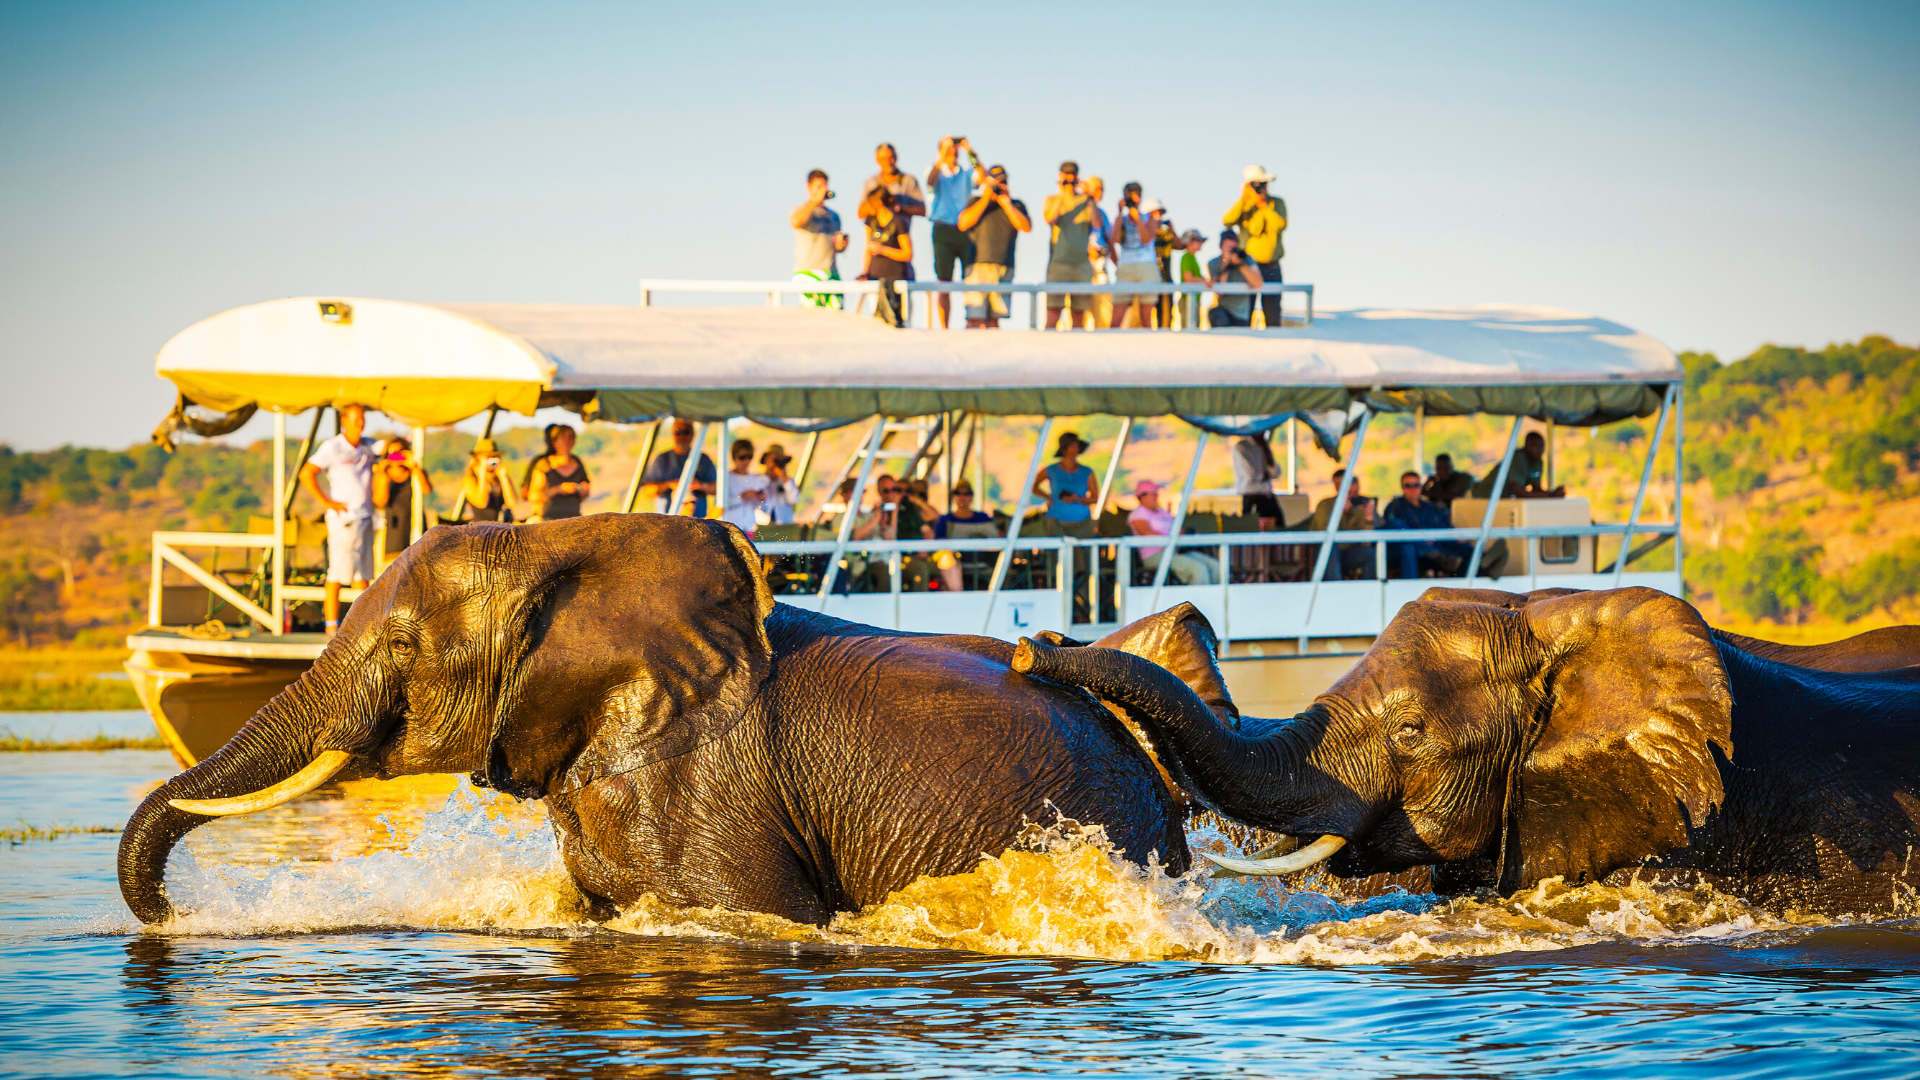 36 - The Ultimate Dream Holiday: Is an African Safari Right for You?